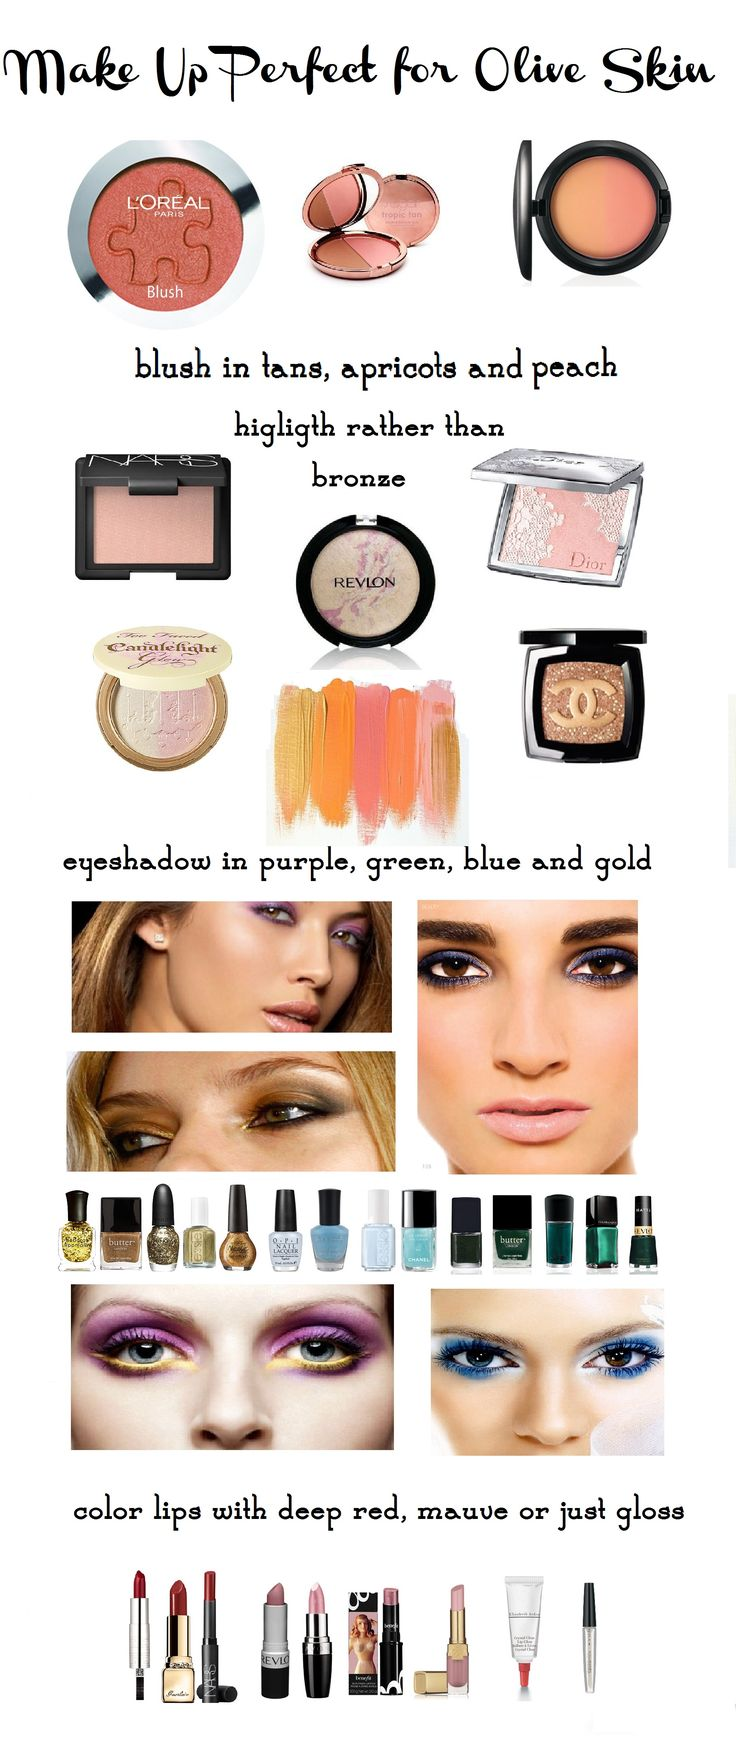 make up for olive skin tan peach apricot use highlighter rather than bronze avoid pastels and pinks for eyeshadow use purple blue greens metallic or gold use mascara and eyeliner avoid pinks for lip color instead use deep red mauve lipstick for sexy sultry look matching your skin tone or clear lip gloss or light tint gloss for day wear and correct color for foundation to begin with match nail polish with eyeshadow for extra girly look